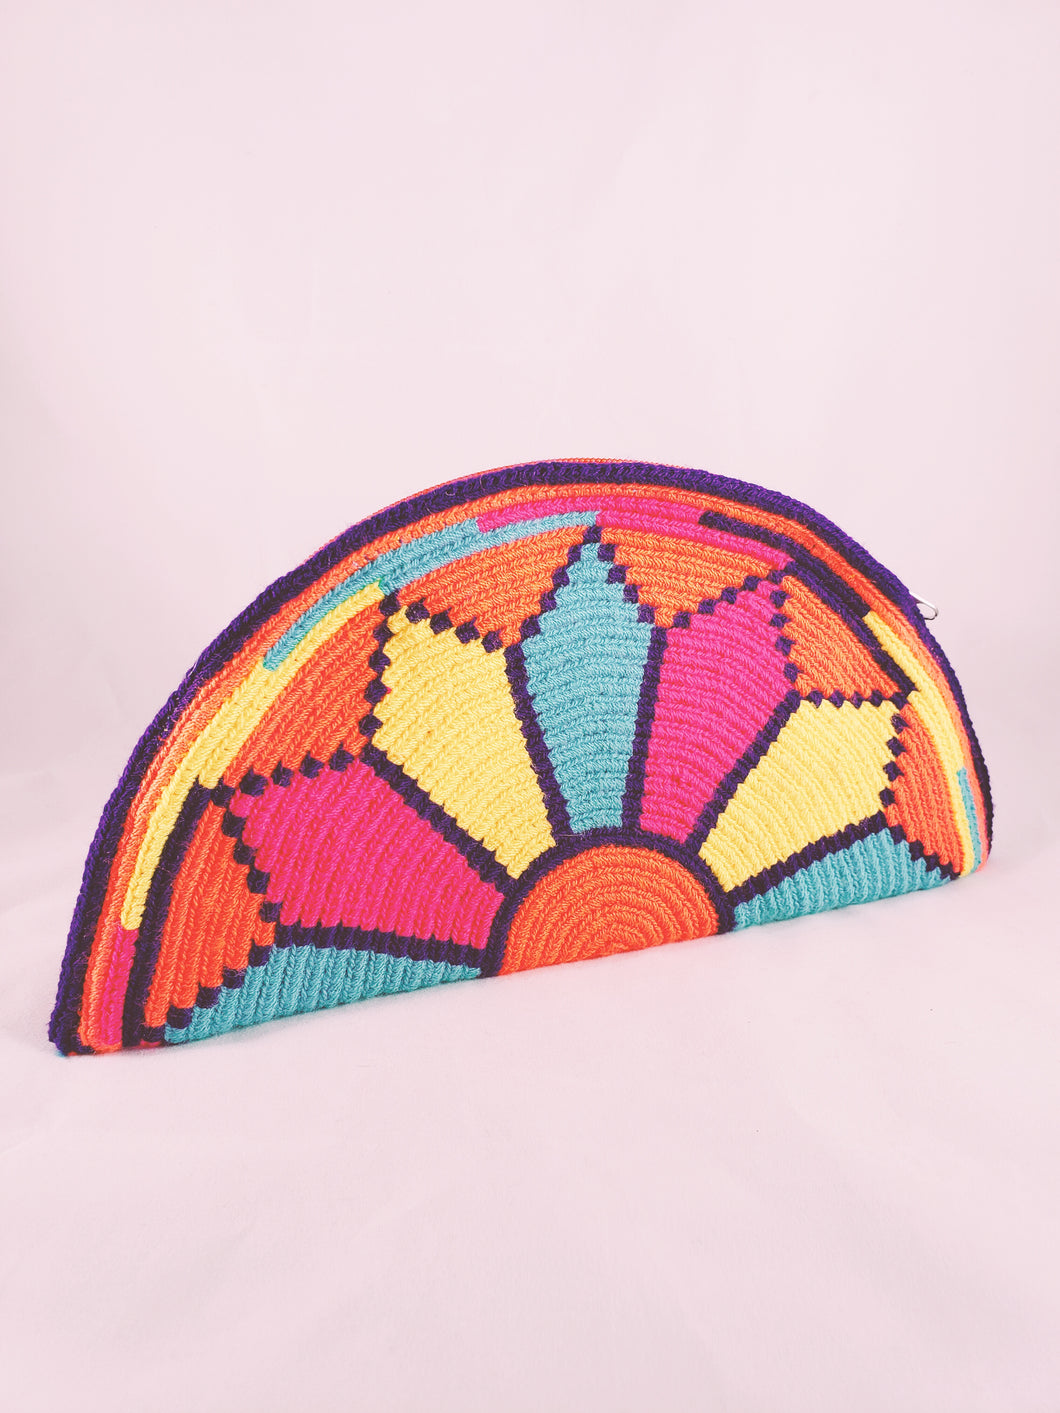 Orange, Pink, Yellow and Blue Handmade Wayuu Crochet Clutch - Wuitusu